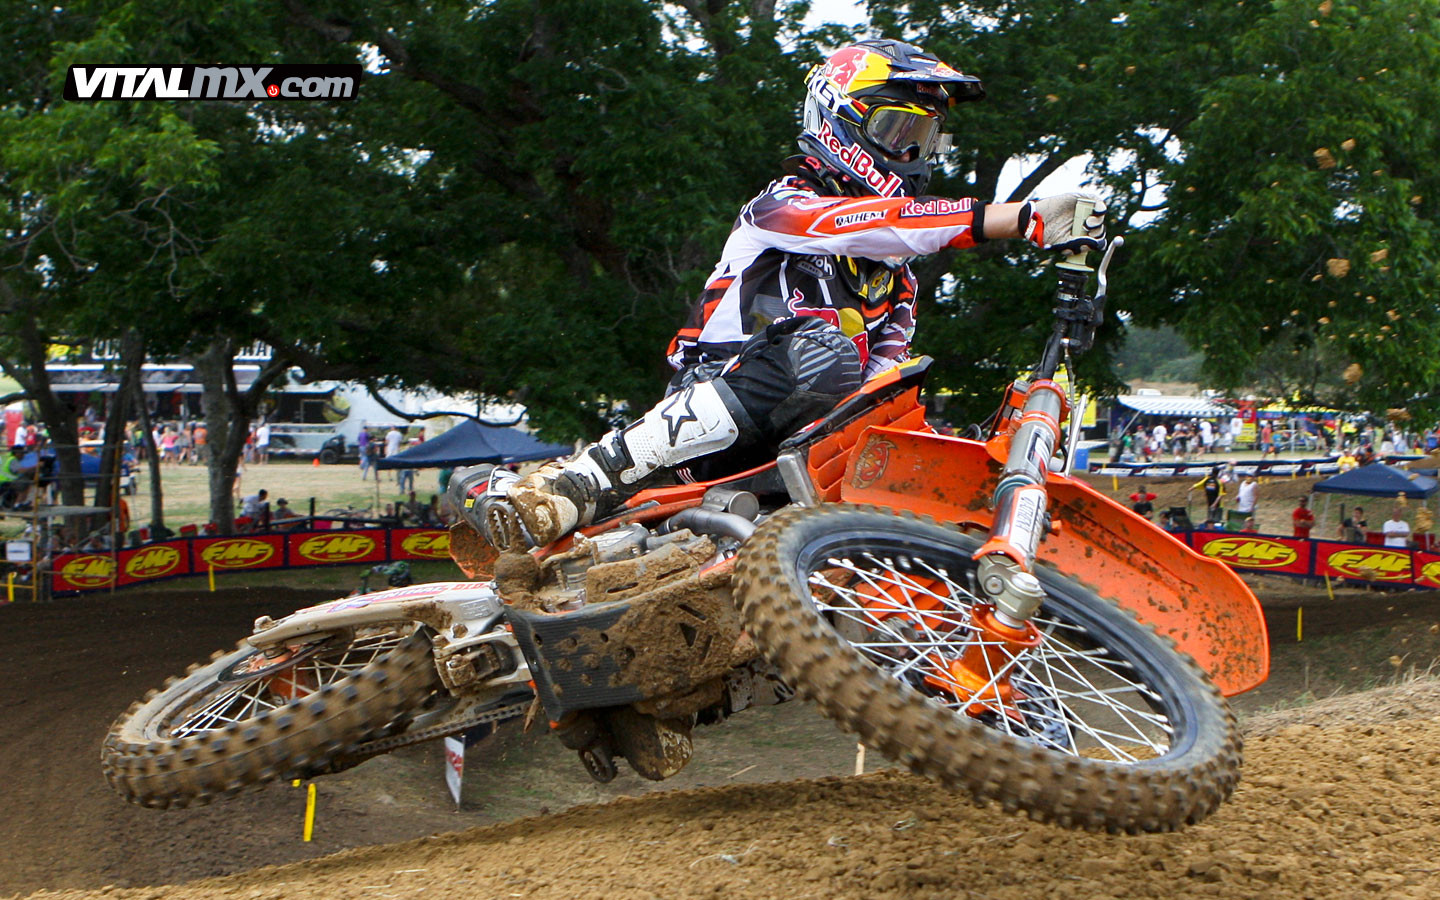 Marvin Musquin - Pics o' The Day - Motocross Pictures - Vital MX